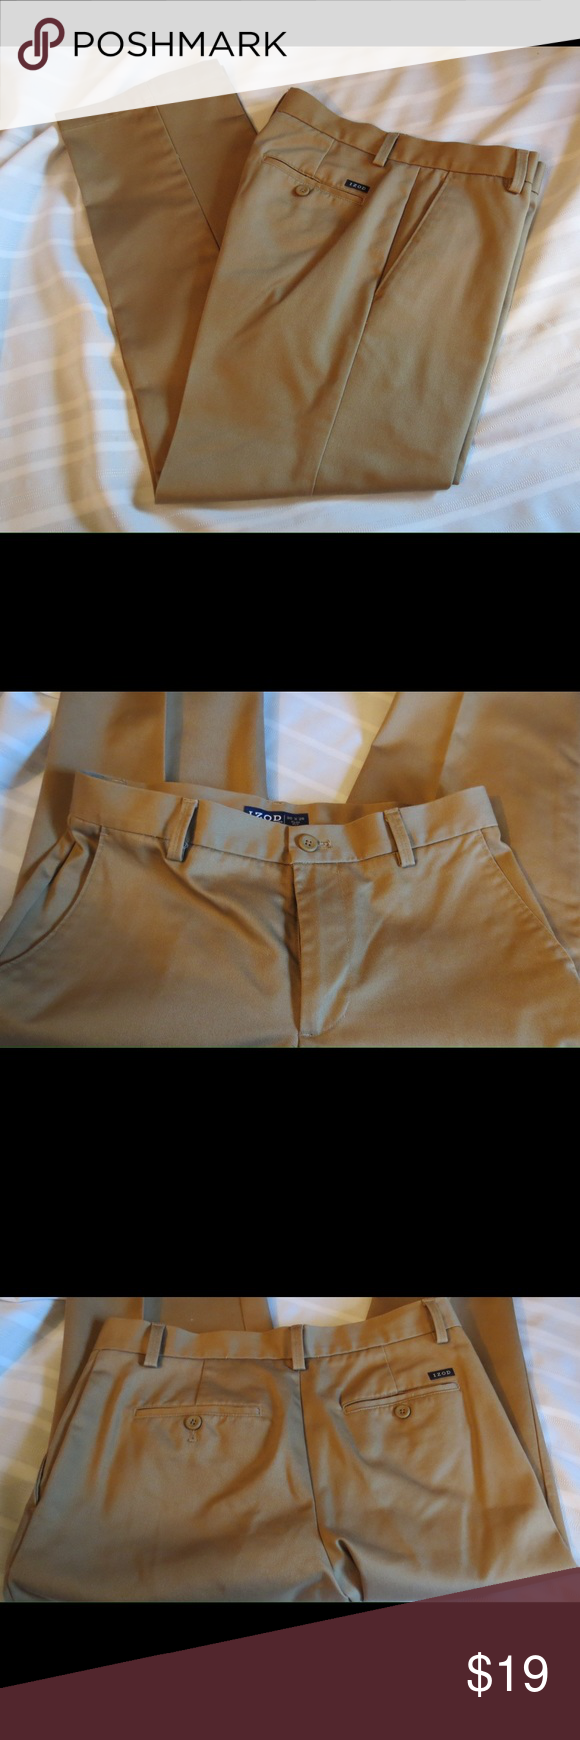 "Izod Tan Khaki Pants Size 30 X 29 Izod Tan Khaki Pants Size 30 X 29  Size 30    Length  29""   Gently used excellent condition, dry cleaned! All of my items are Guaranteed 100% Genuine I do not sell FAKES of any kind No Trades (C1013) Izod Pants Chinos & Khakis"